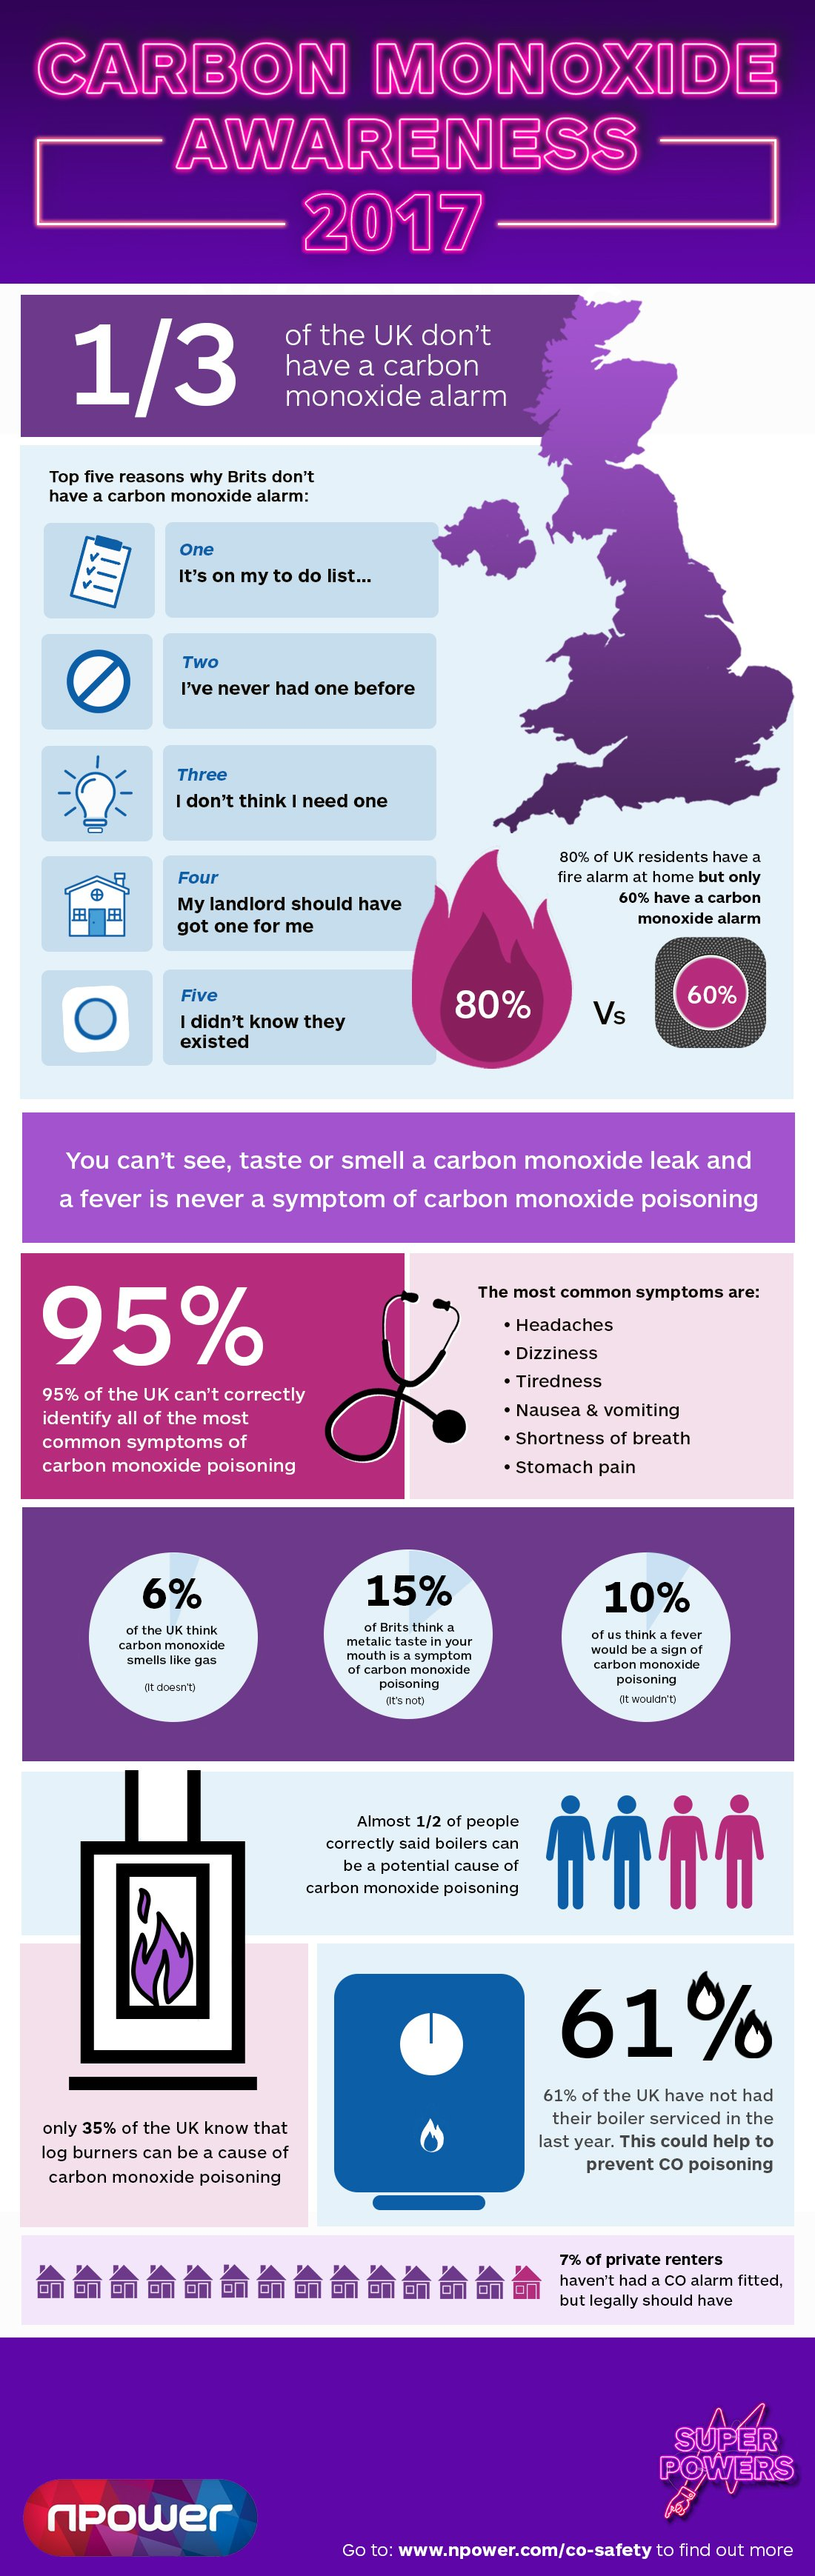 Carbon Monoxide awareness 2017 infographic